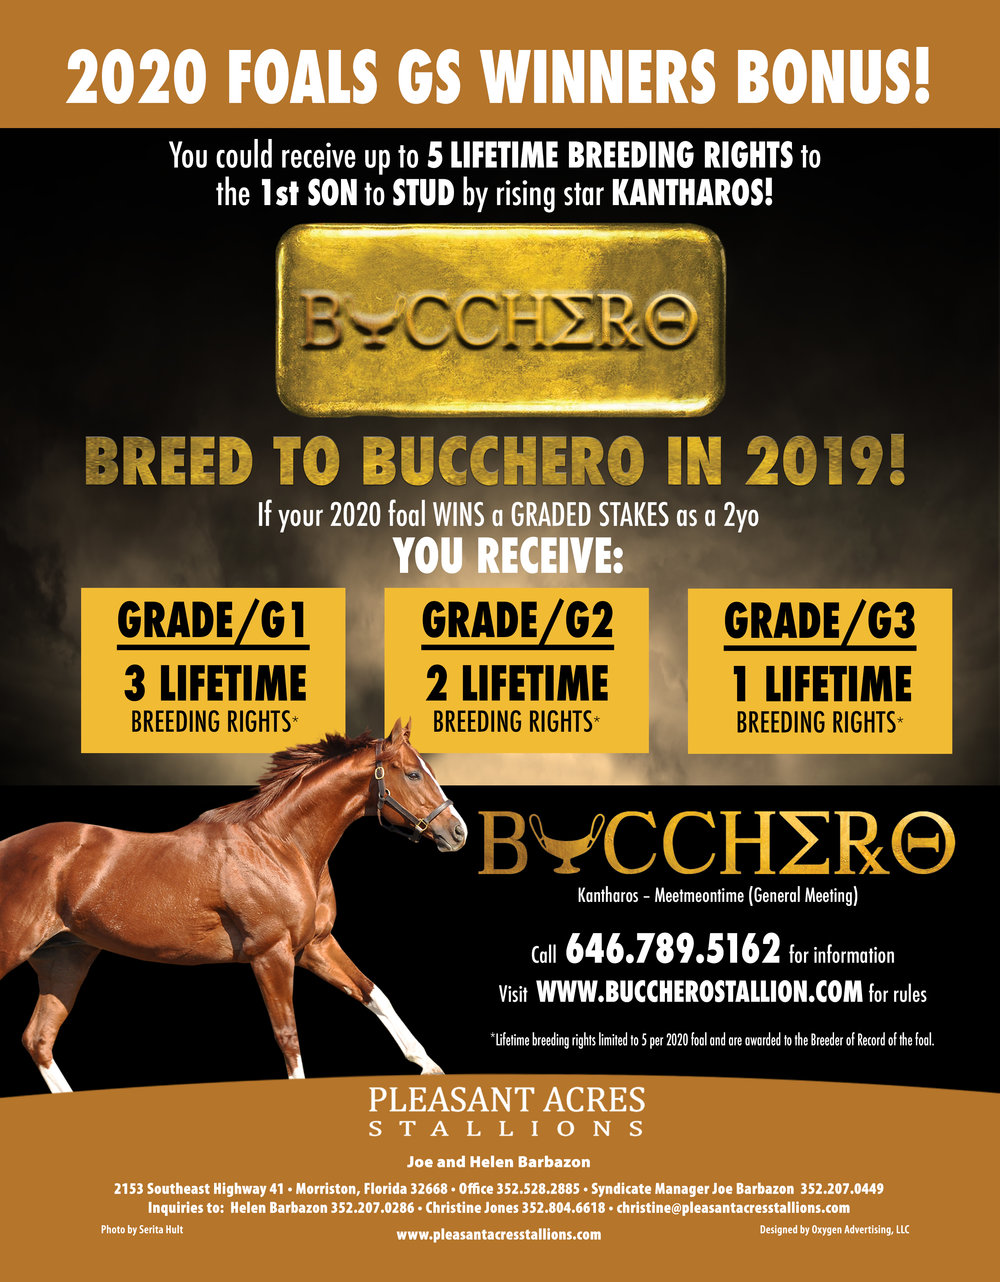 2020 Foal Lifetime Breeding Bonus Rules -